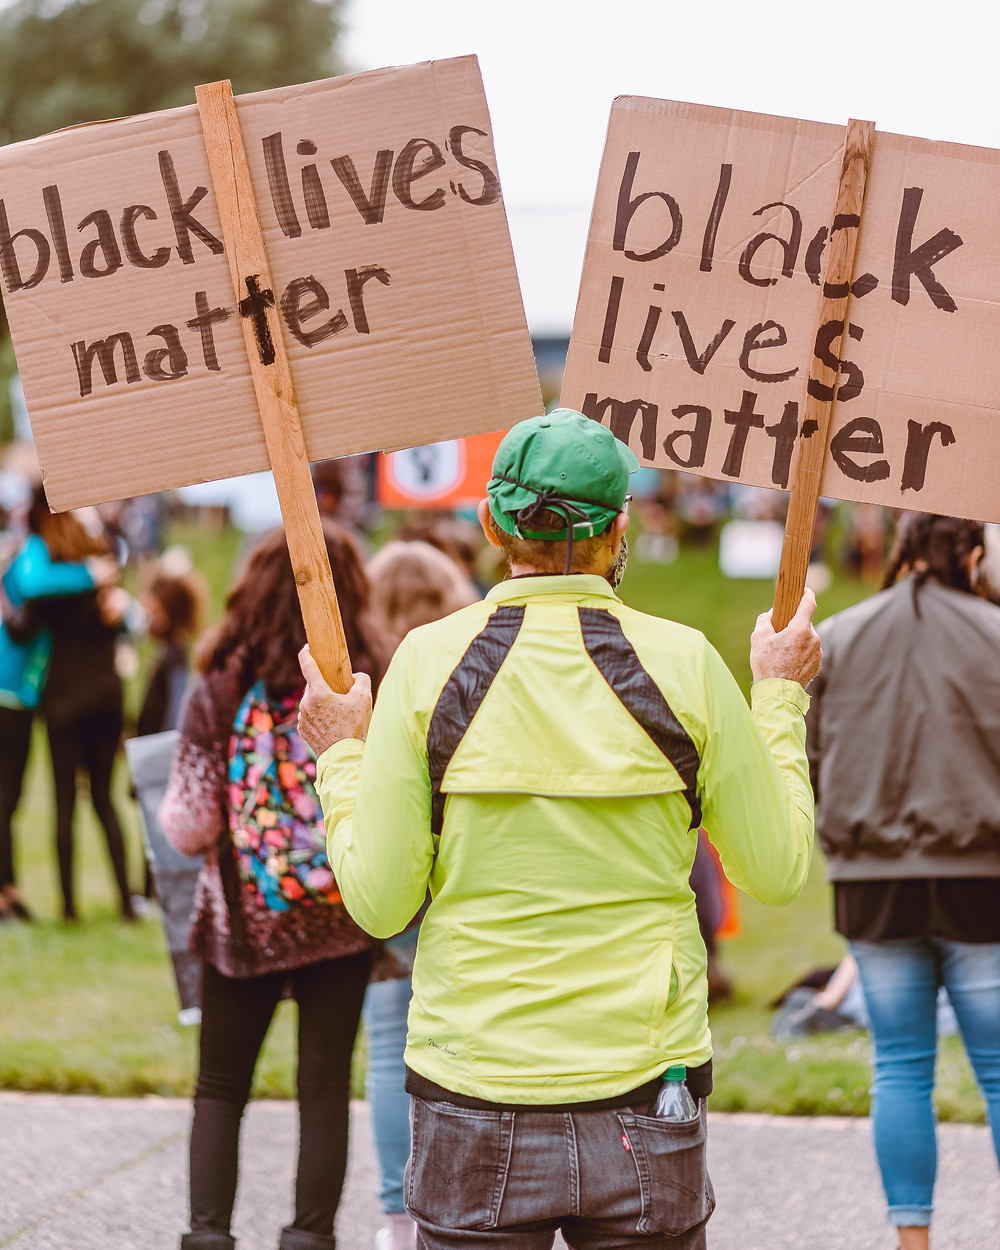 Image of a white person wearing waterproof jacket and hat facing away from the camera holding up two signs that say black lives matter.